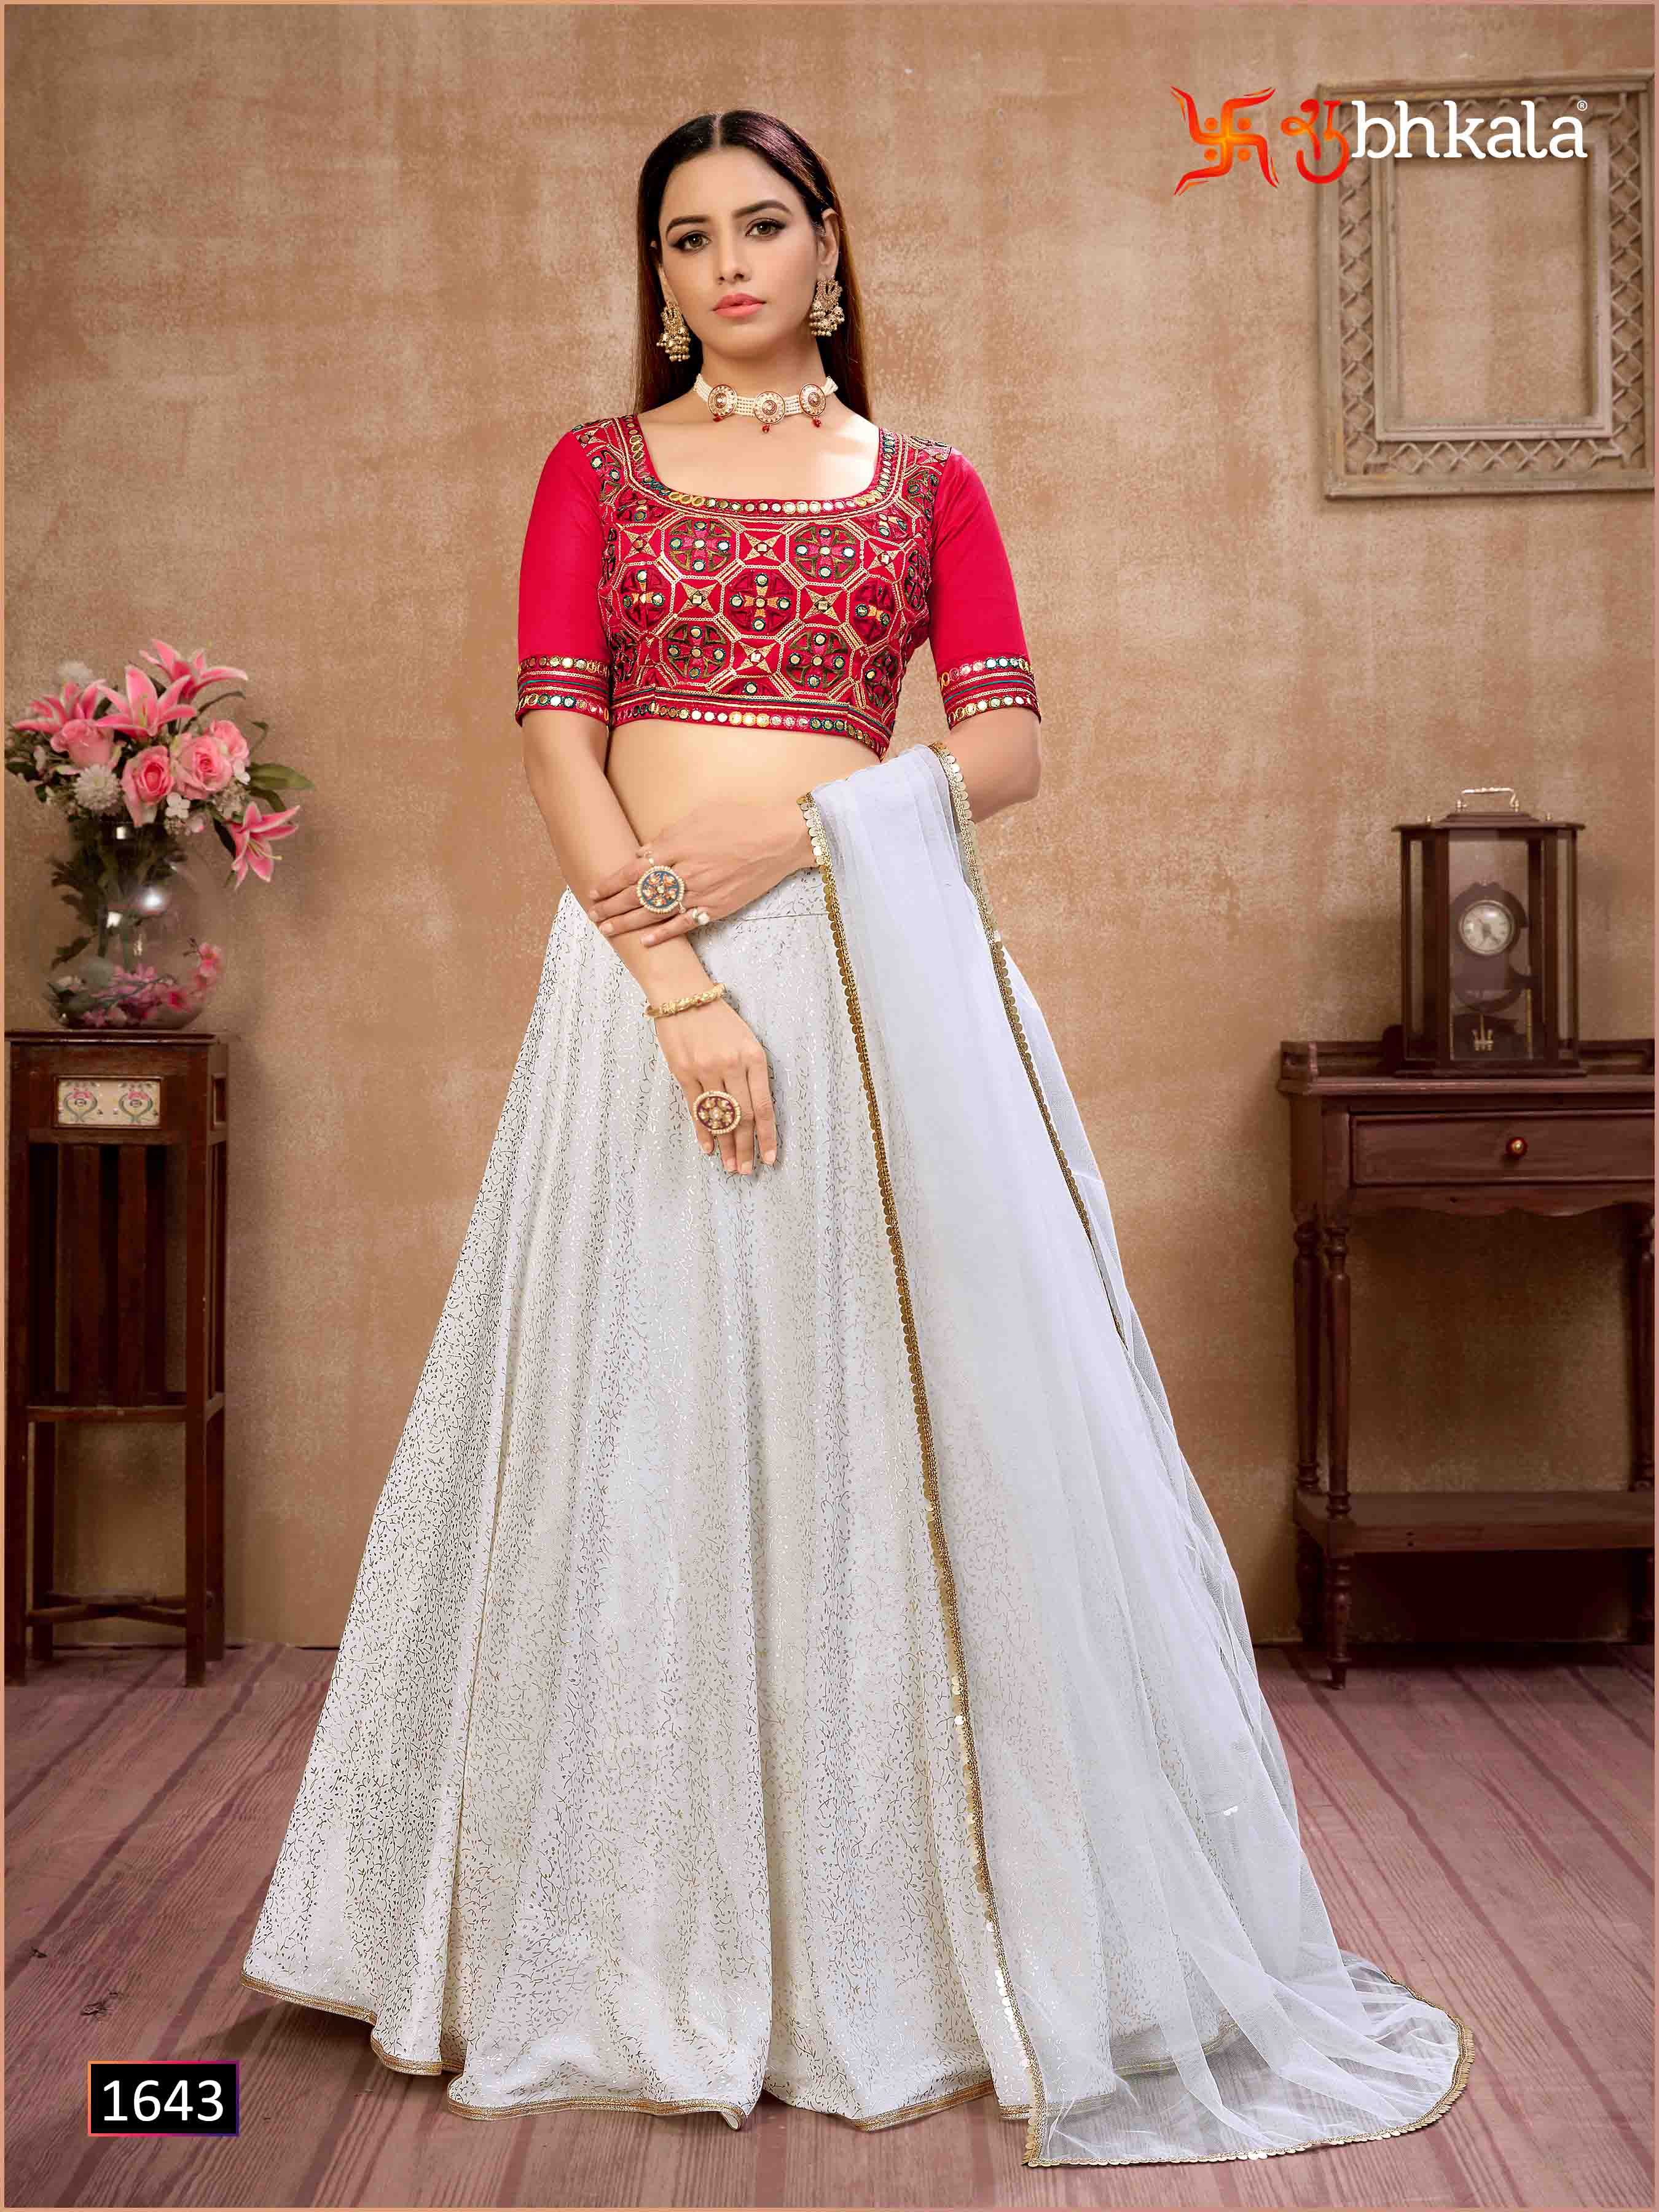 Kf Girly 12 Wedding Wear collection 4